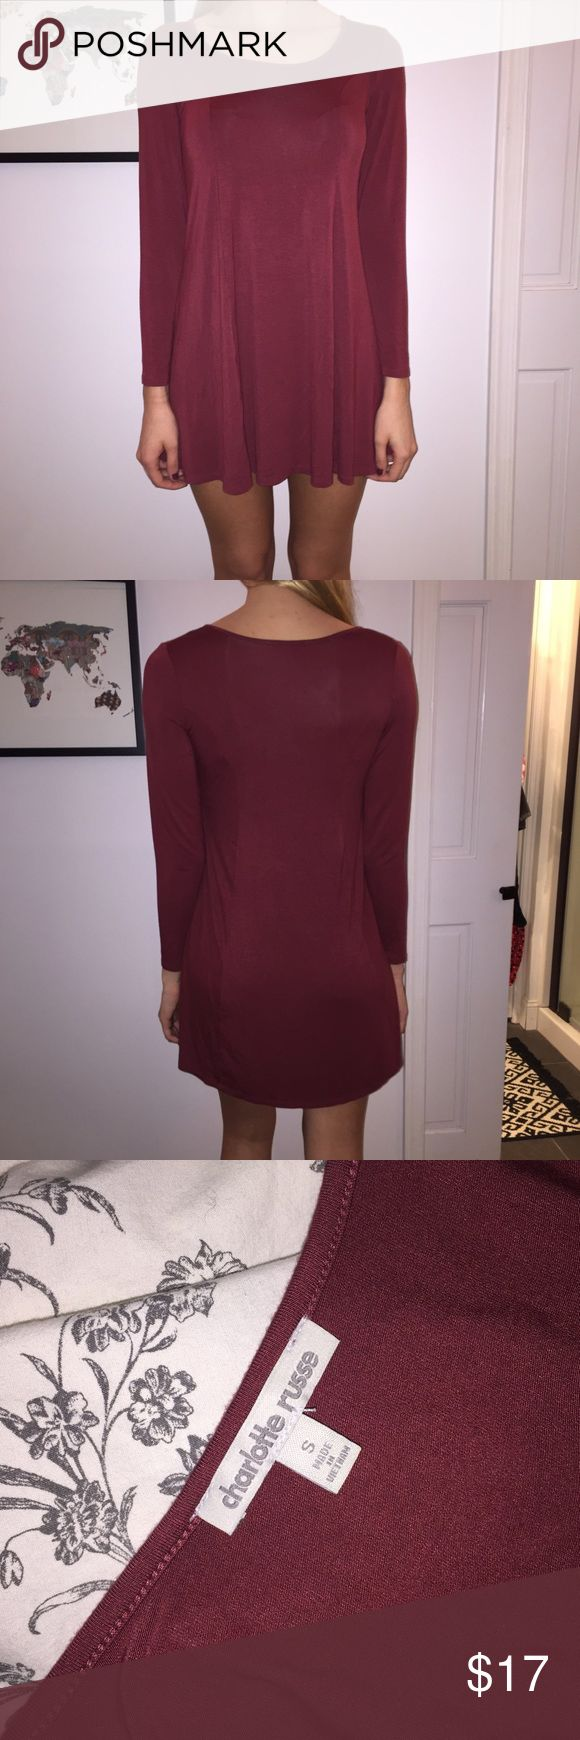 Maroon Long Sleeve Dress Short, long sleeve, dress in maroon with scoop neck. Never worn! I am 5'8 and it's a little short for me. Perfect condition. [Will accept REASONABLE offers but no trades] Charlotte Russe Dresses Long Sleeve